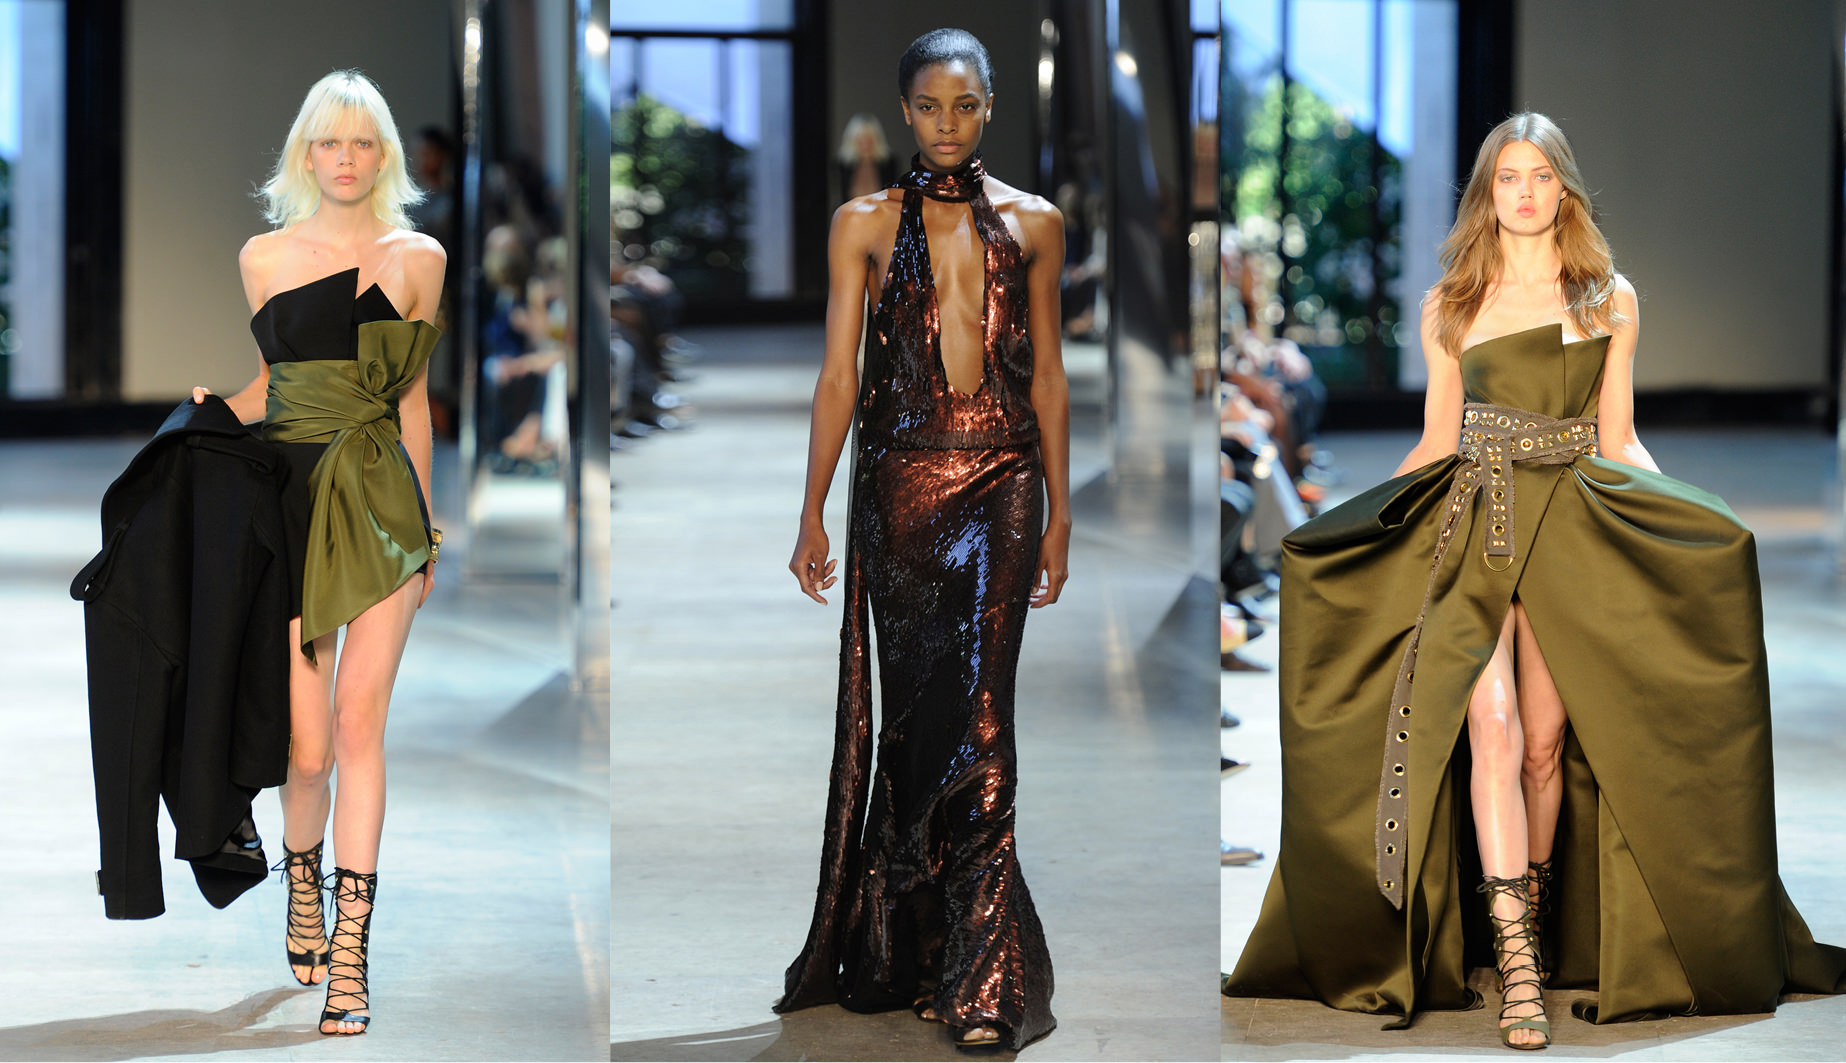 The Alexandre Vauthier fall-winter 2016-2017 haute couture show.  You presented very voluminous floor-skimming dresses in taffeta for the first time...  It's true that's a new thing. I'd never done that kind of dress before. I've always been fascinated by 1950s haute couture, but never wanted to include it in my collections because I didn't think it was of the moment. But this time mixed with the rest of the collection, it was the right thing to do. We started from volumes based on the work of Charles James [an Anglo-American couturier from the 30s to 50s renowned for his sculptural volumes] that we re-appropriated, adding safari jackets and creating hybrids with fishnet to modernise them.